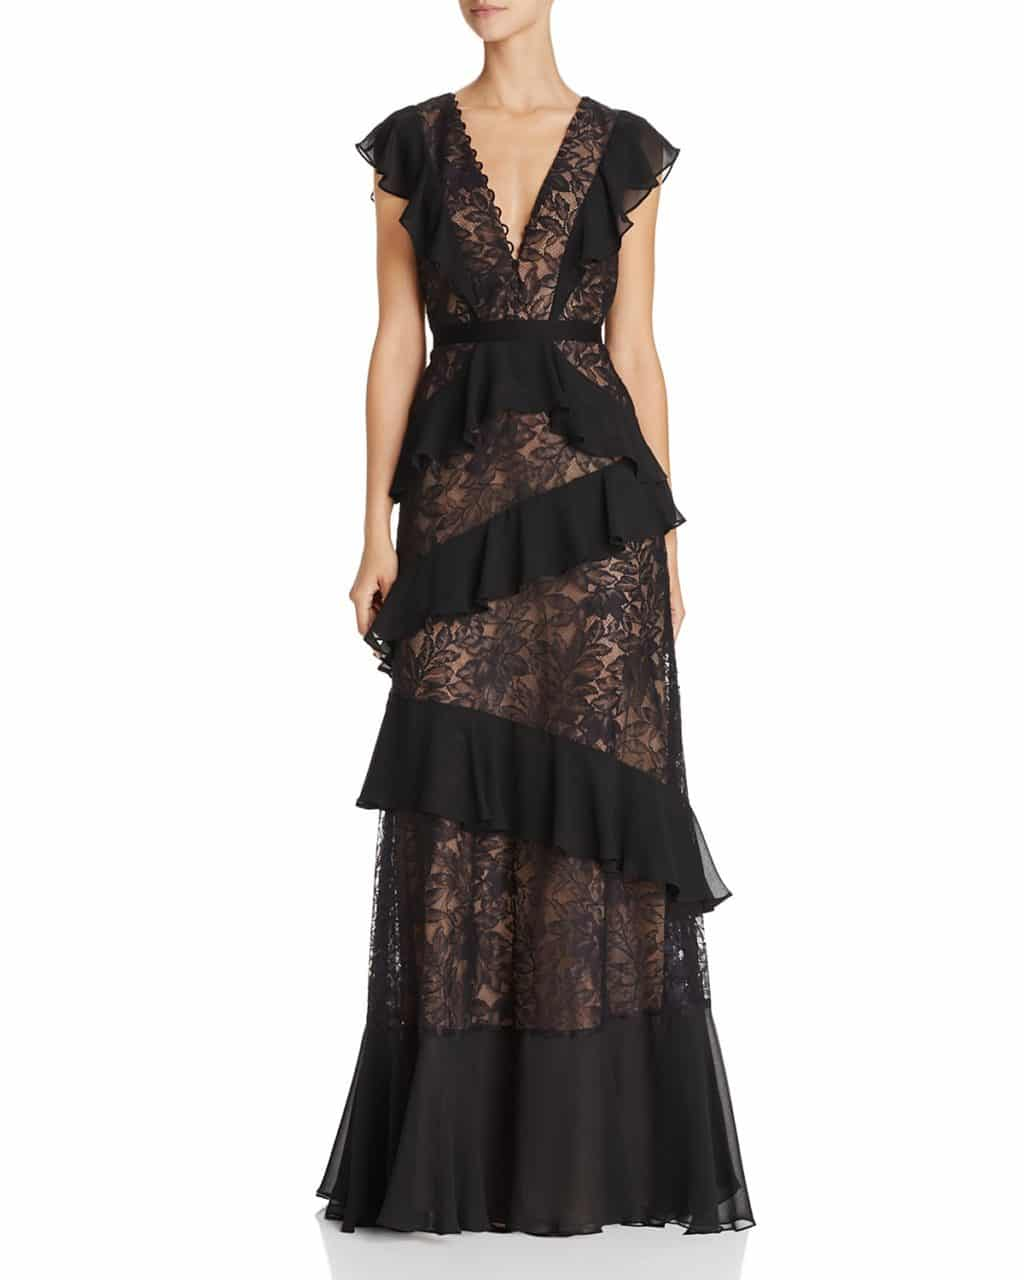 BCBGMAXAZRIA Ruffle Lace Black Gown - We Select Dresses